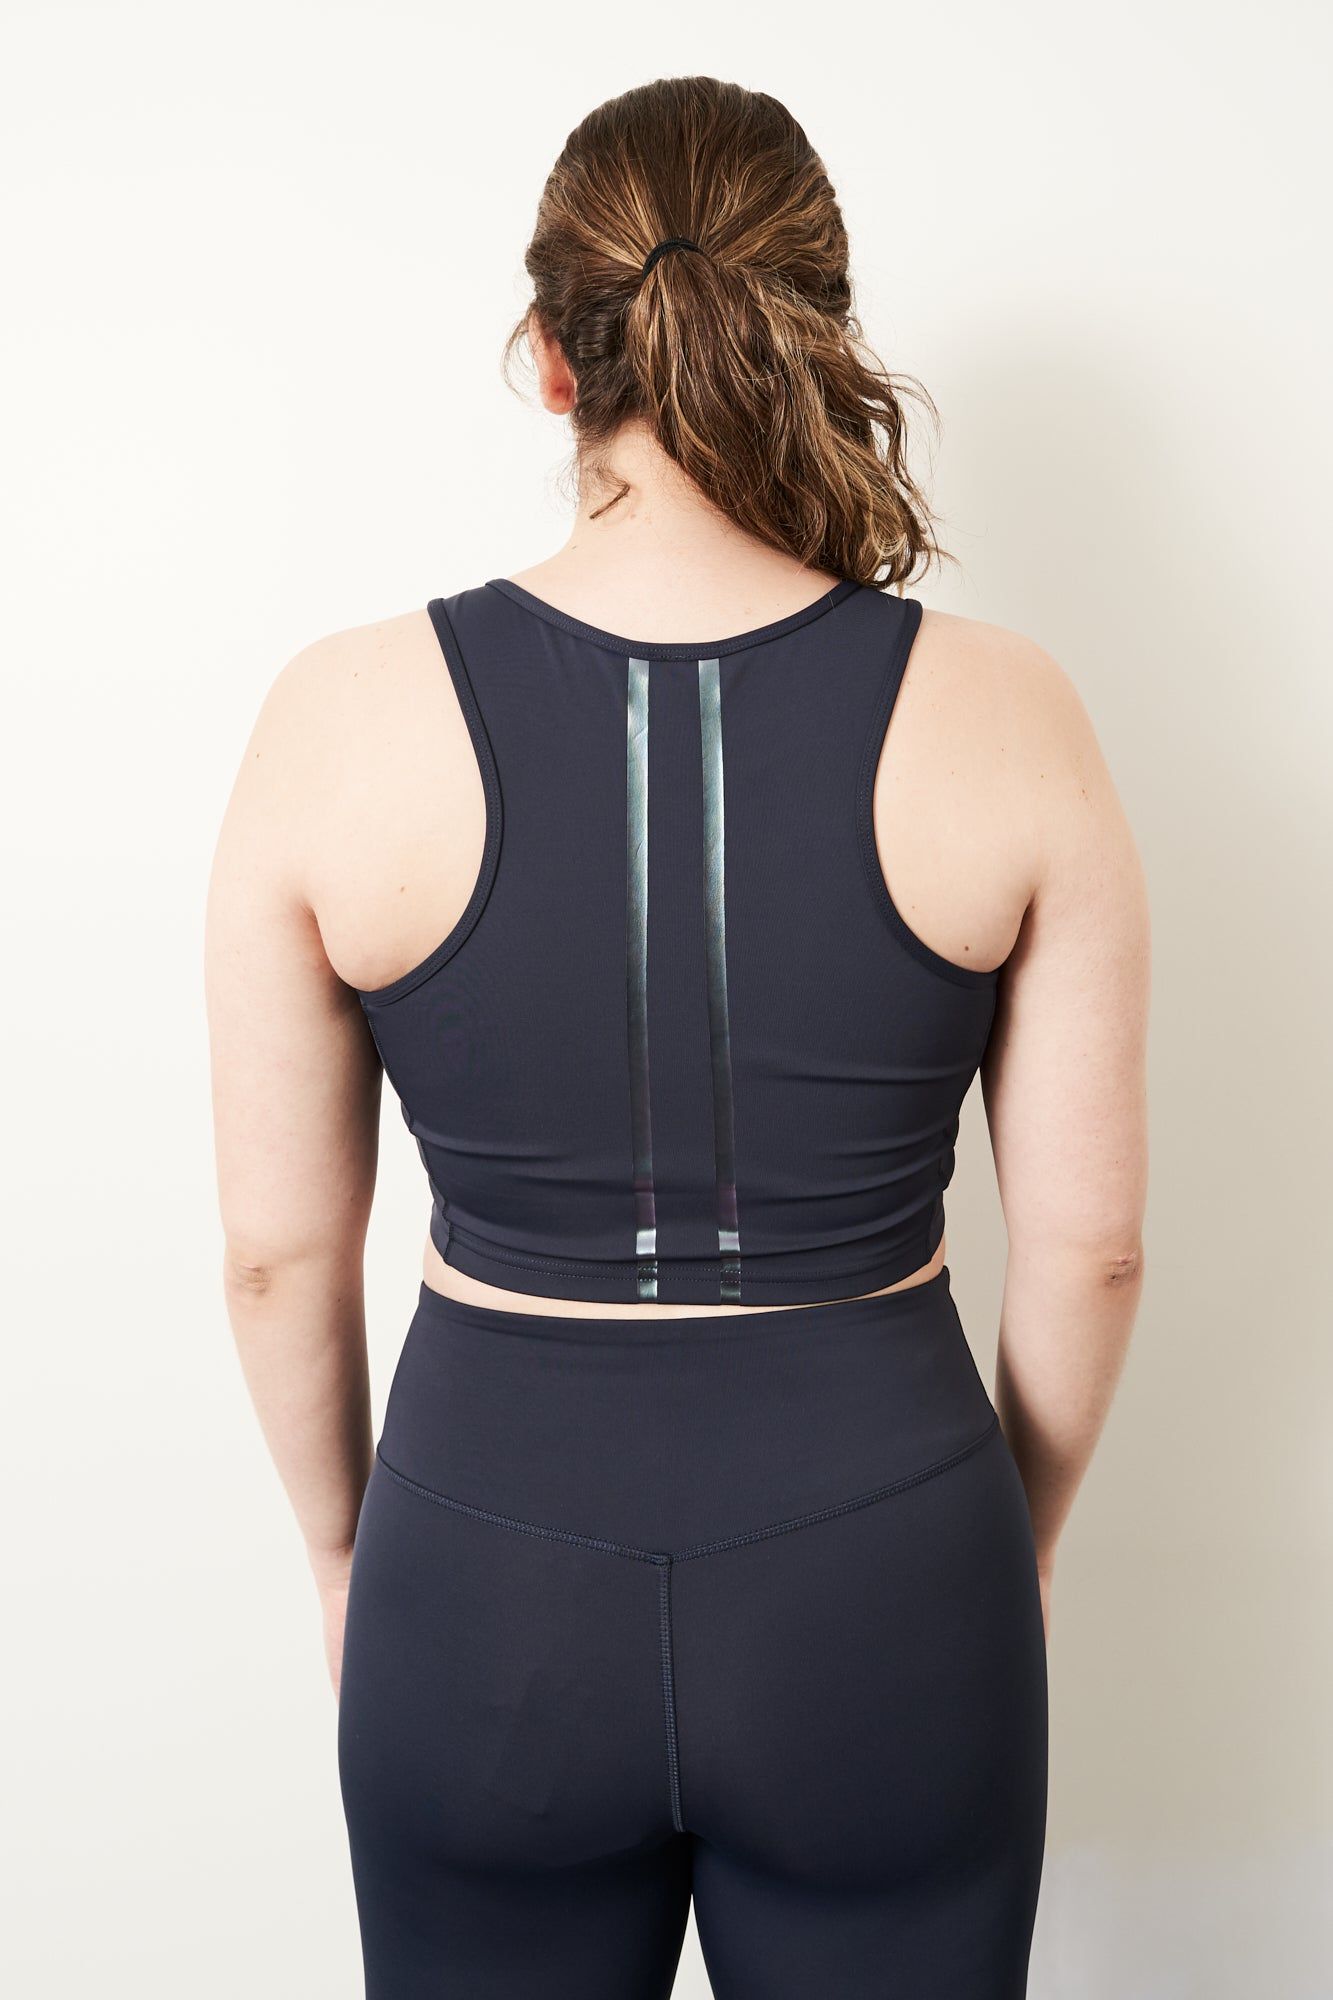 Glimmer Bra - Long Line - Women's Sports Bra